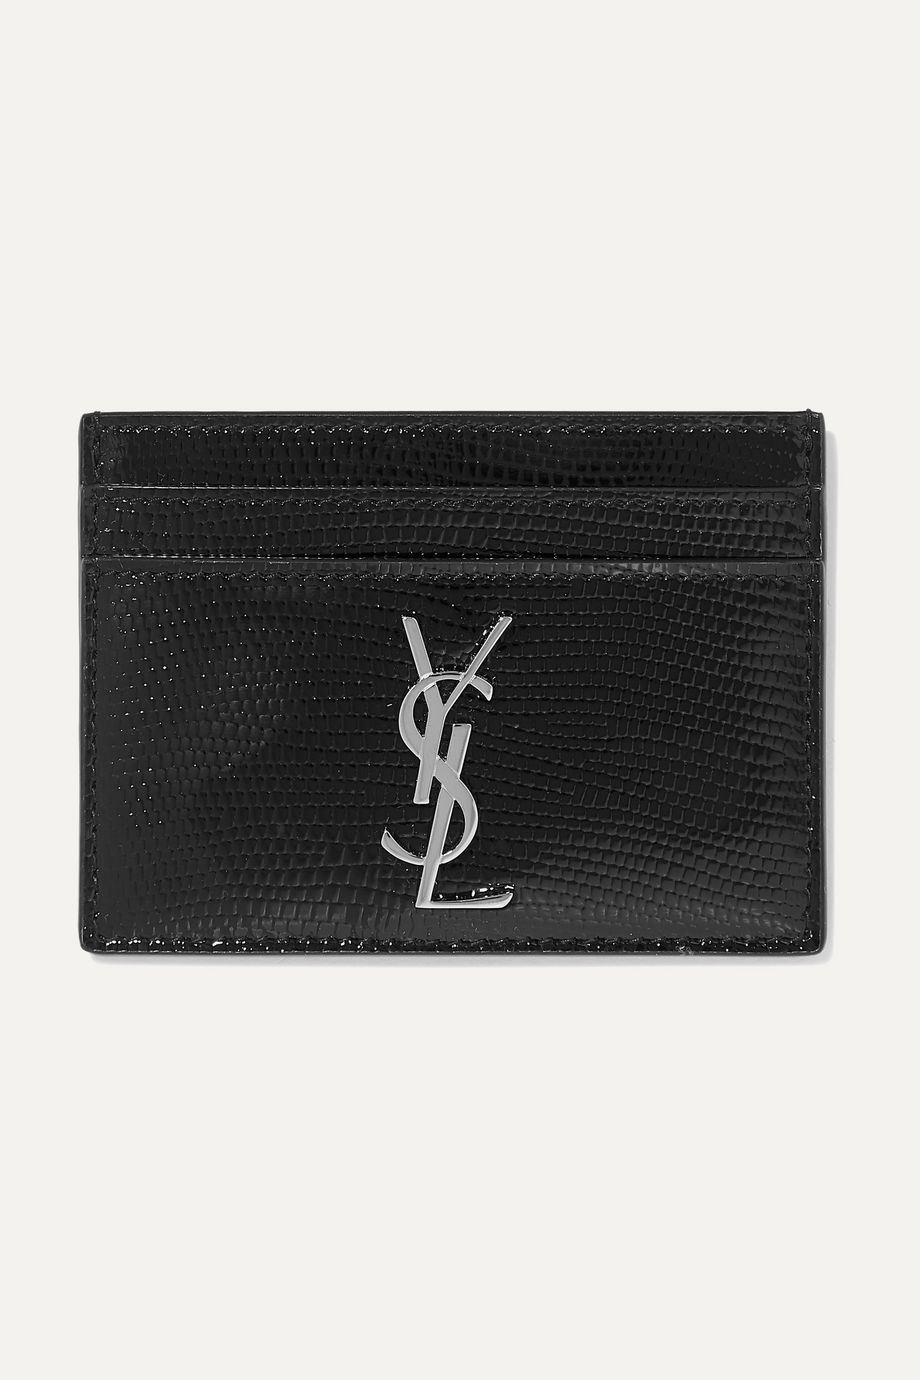 SAINT LAURENT Lizard-effect glossed-leather cardholder